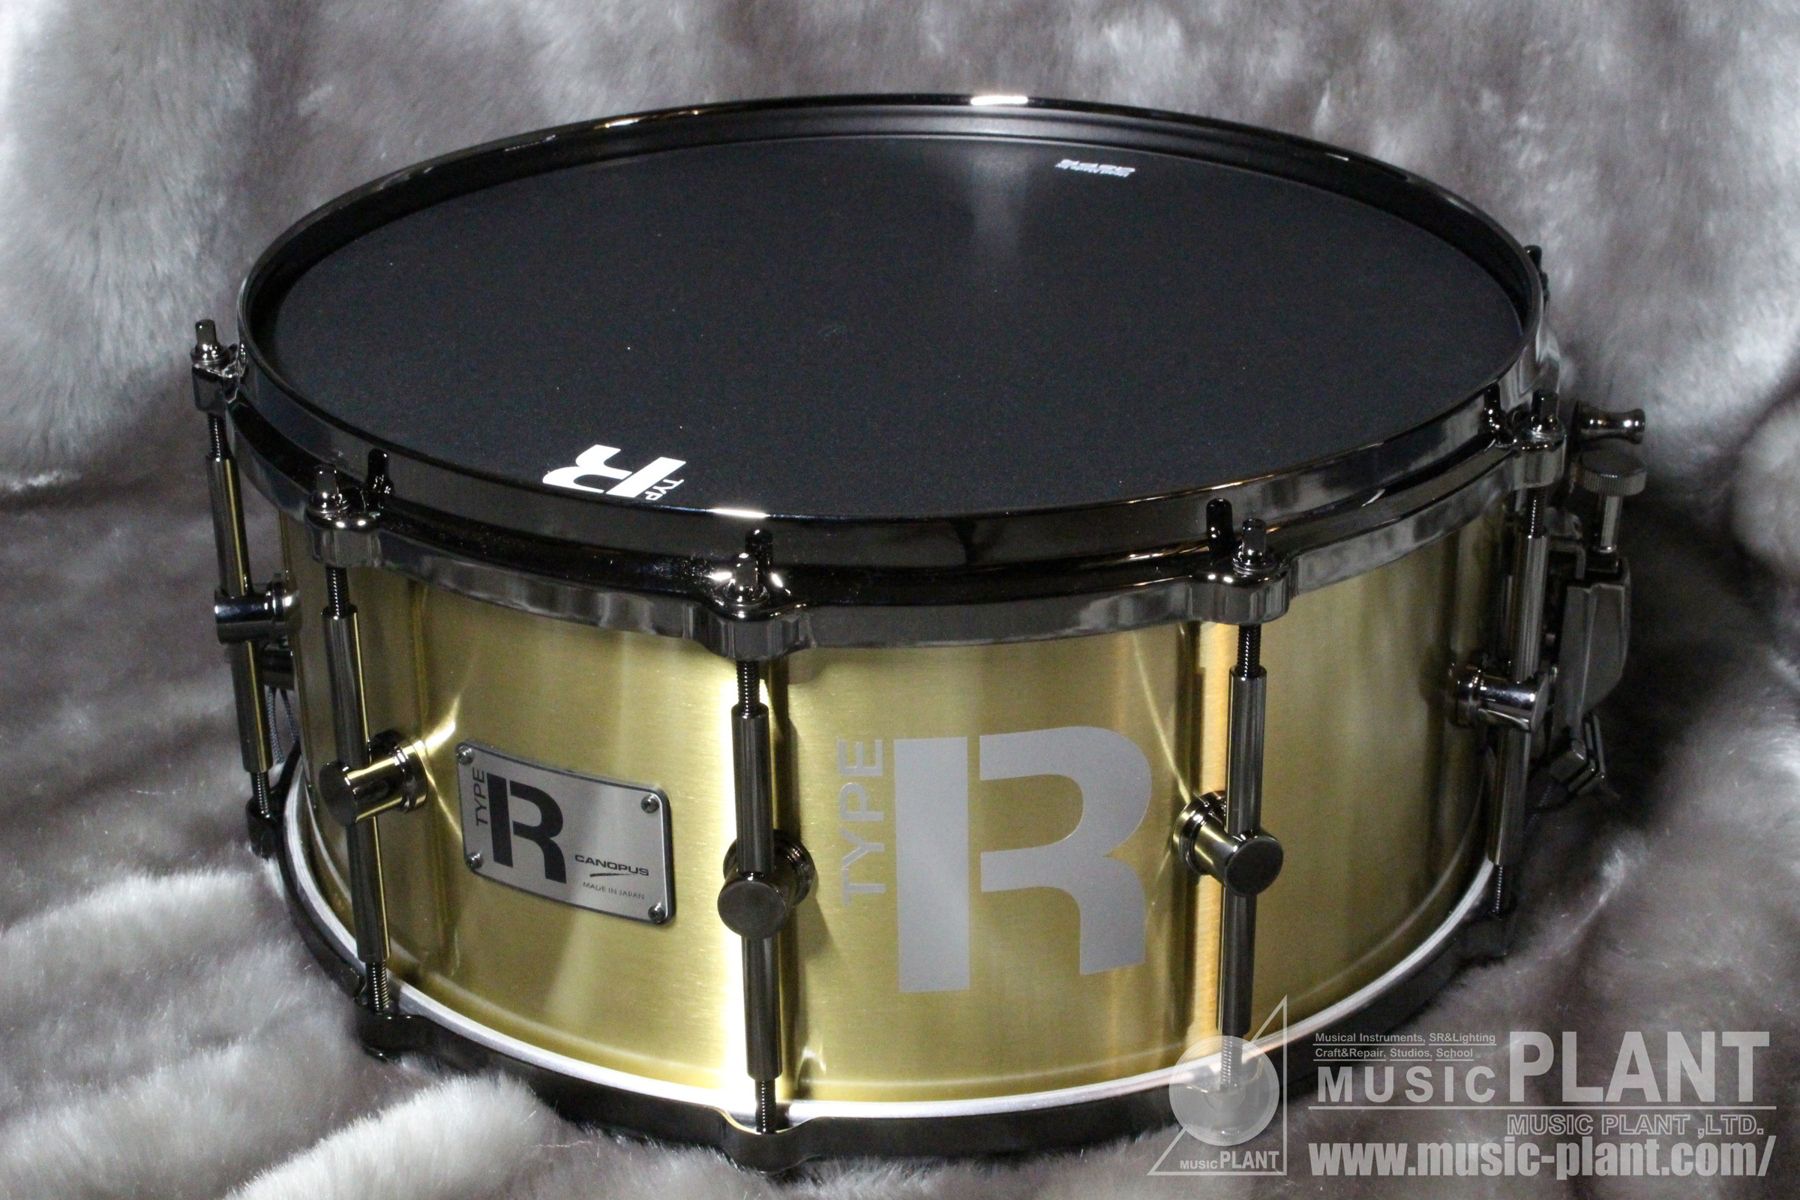 BTR-1465-DH Black Nickel Parts追加画像